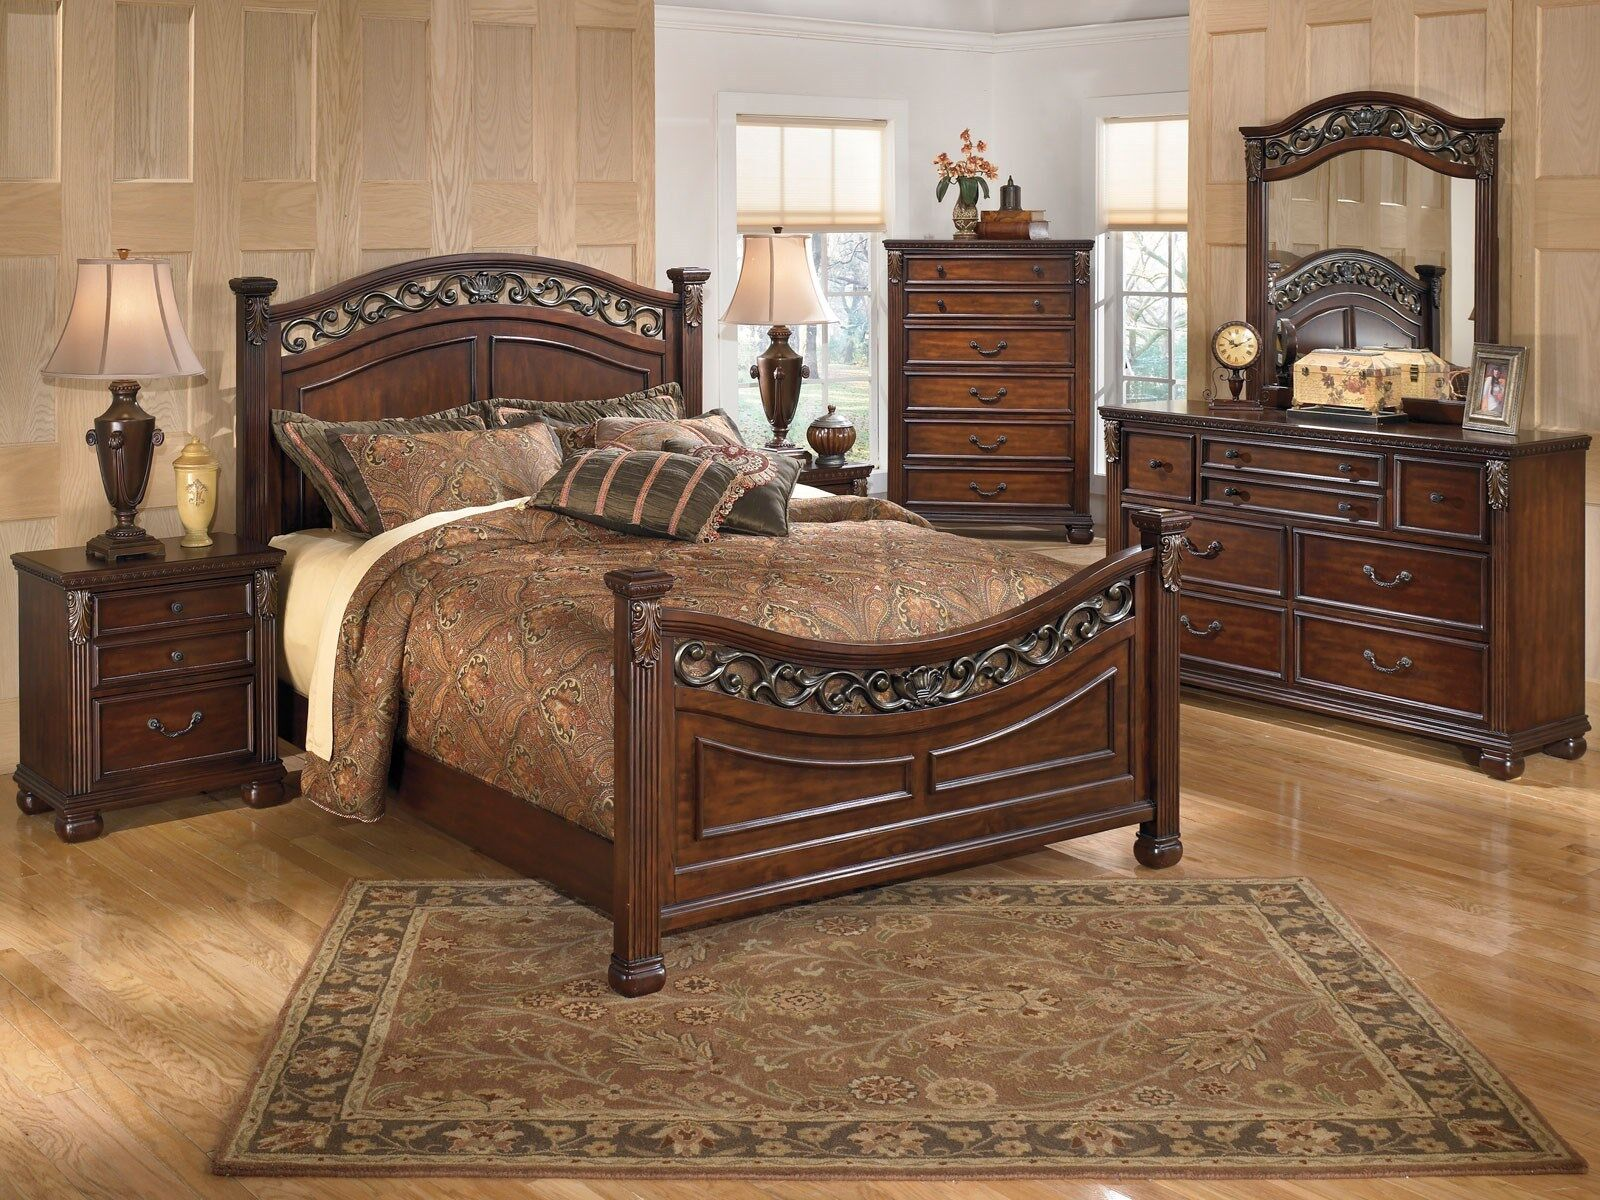 Traditional King Bedroom Furniture Sets